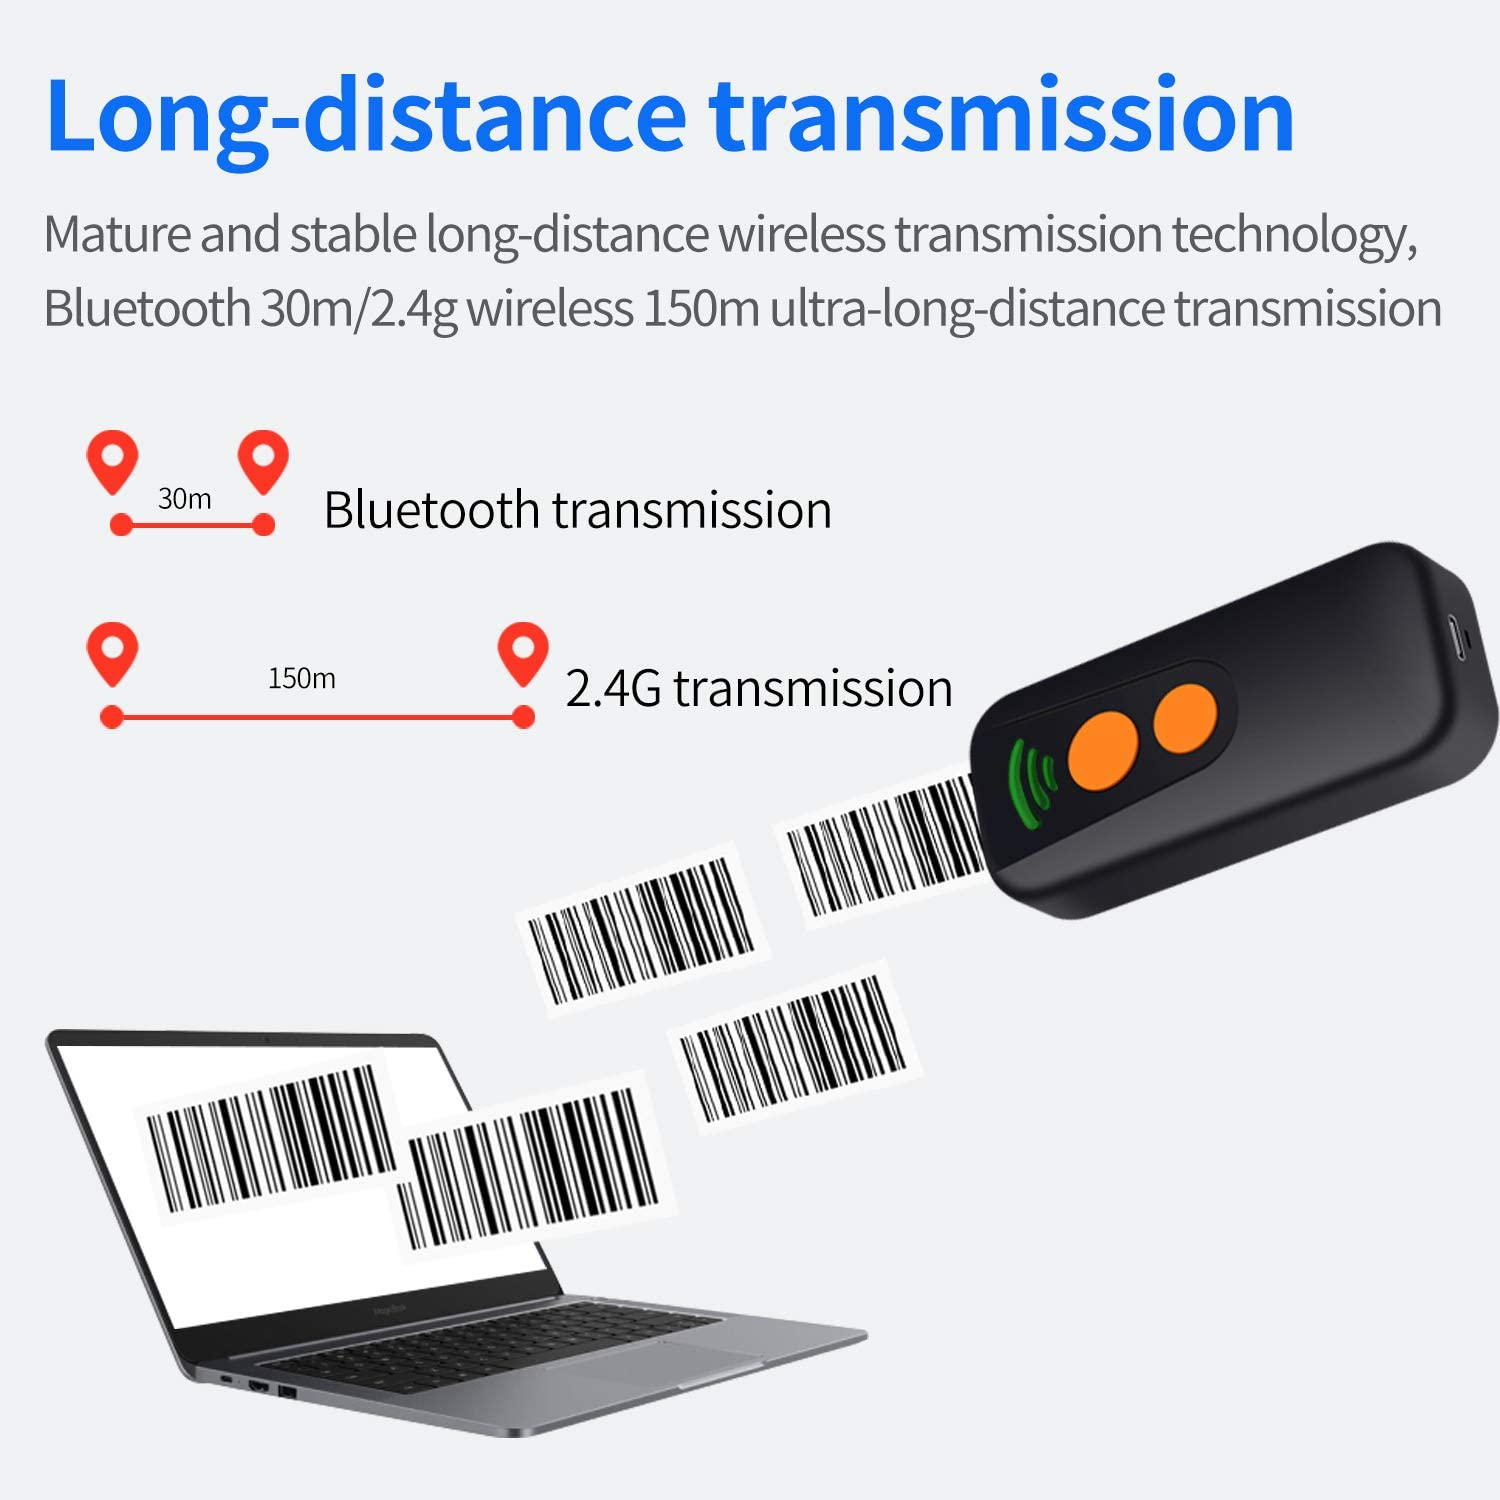 1D 2D Bluetooth Wireless Barcode Scanner,Symcode Portable QR Handheld Mini Barcode Reader for Windows,Android,iOS,Mac.Able to Scan Codes on Screen